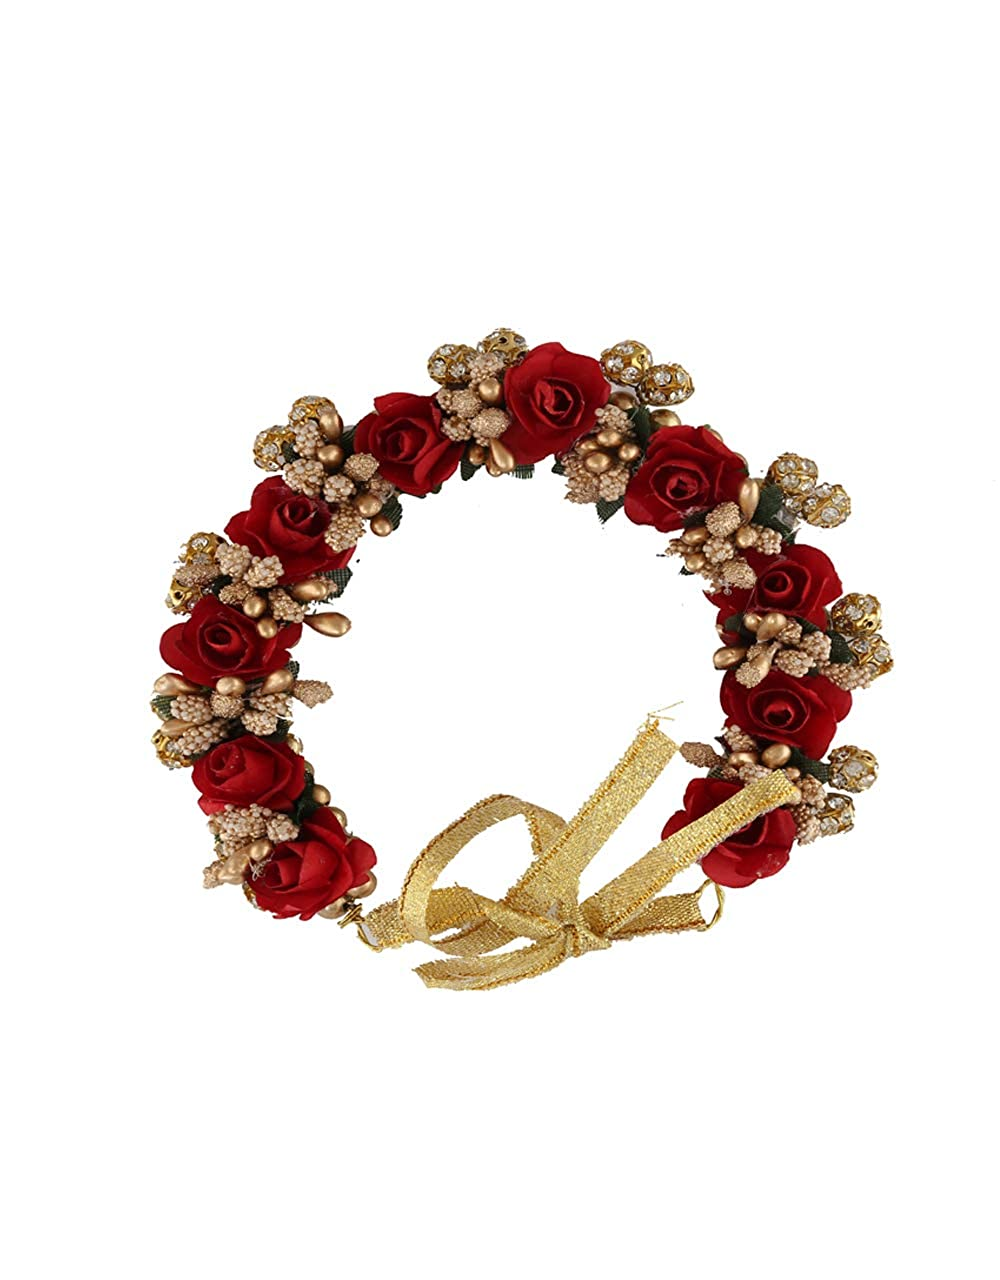 a83688748 Buy Anuradha Art Gold Finish Styled with Red Flower Wonderful Bun Hair  Gajra for Women/Girls Online at Low Prices in India   Amazon Jewellery  Store ...